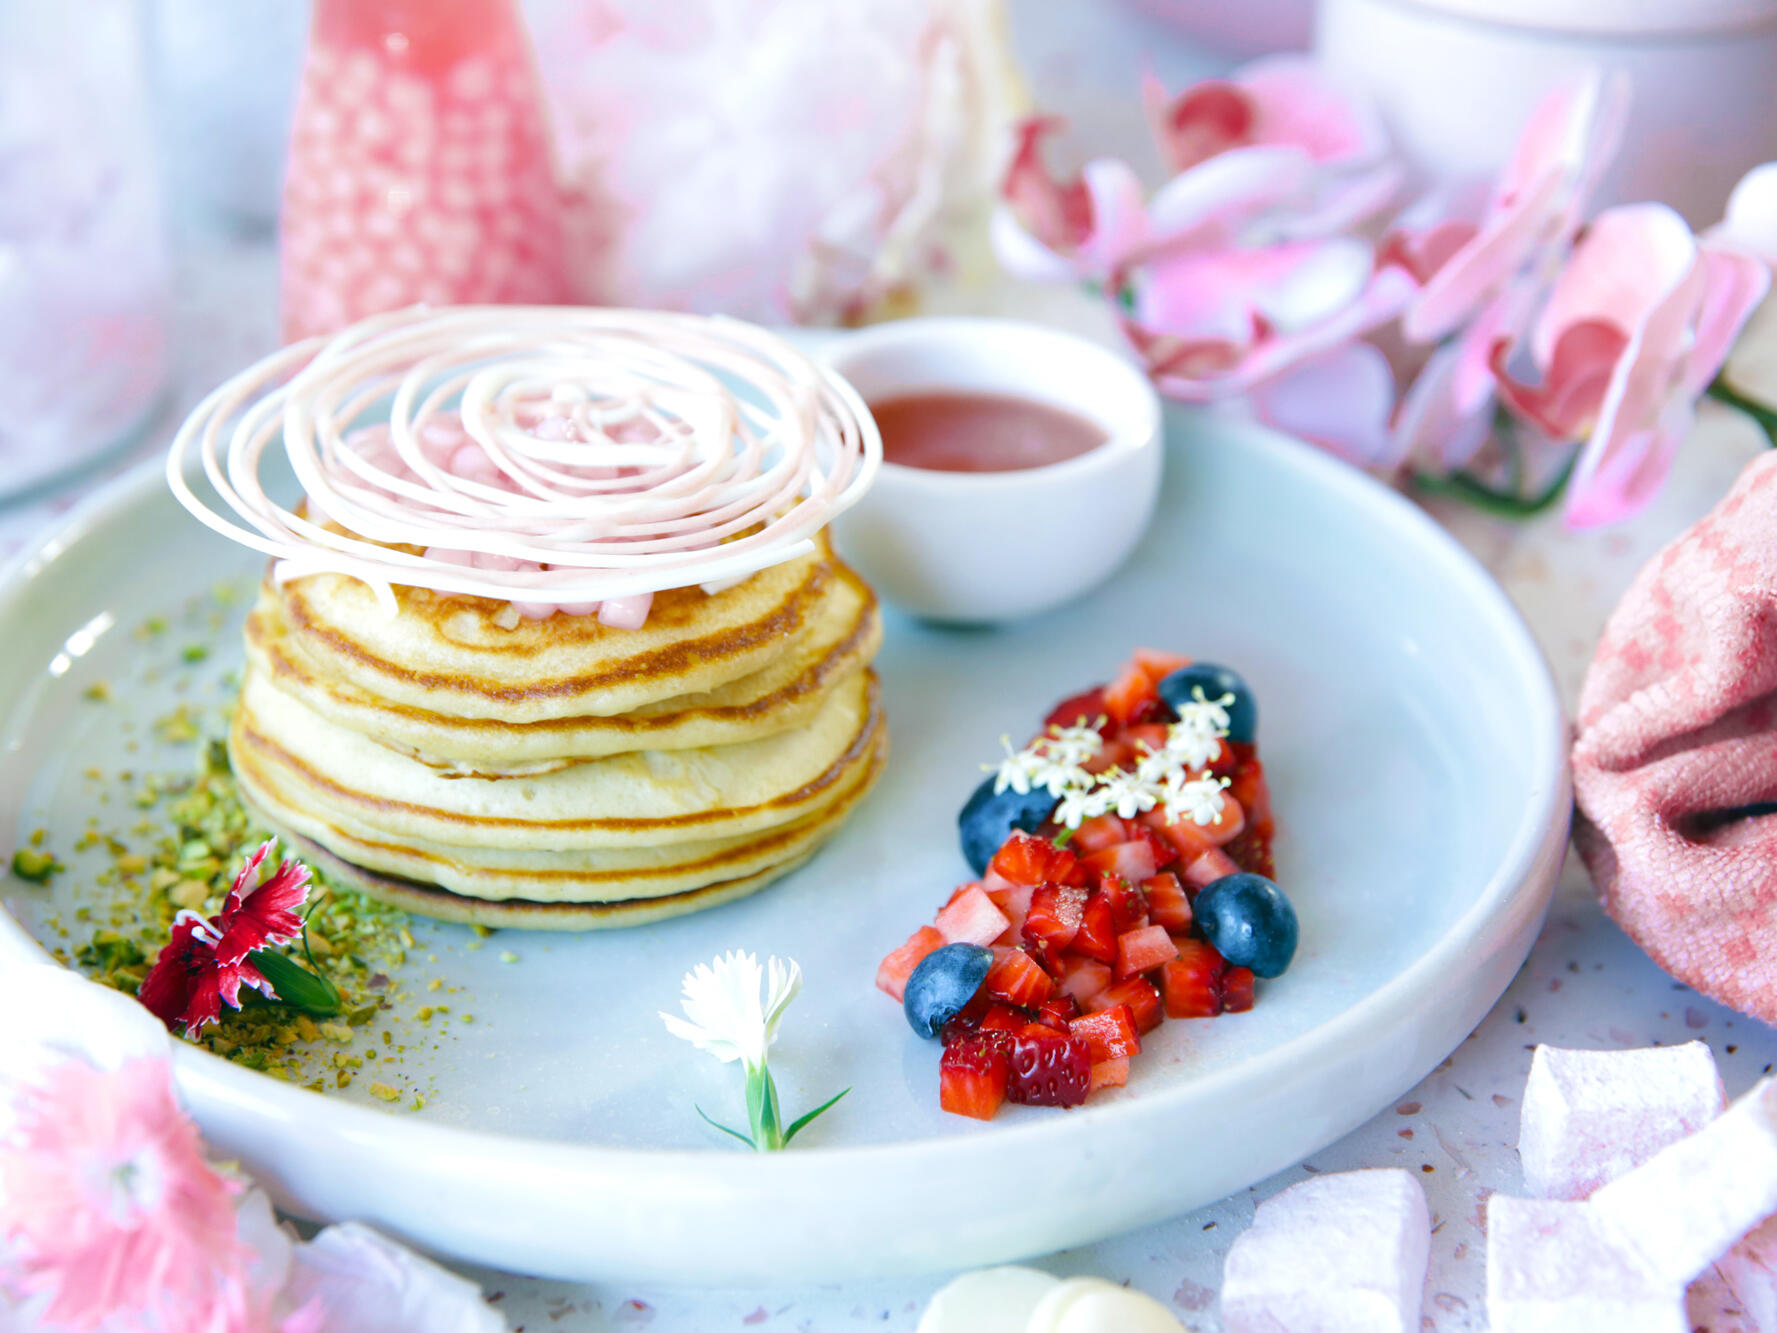 Delicious breakfast available at the Rose room